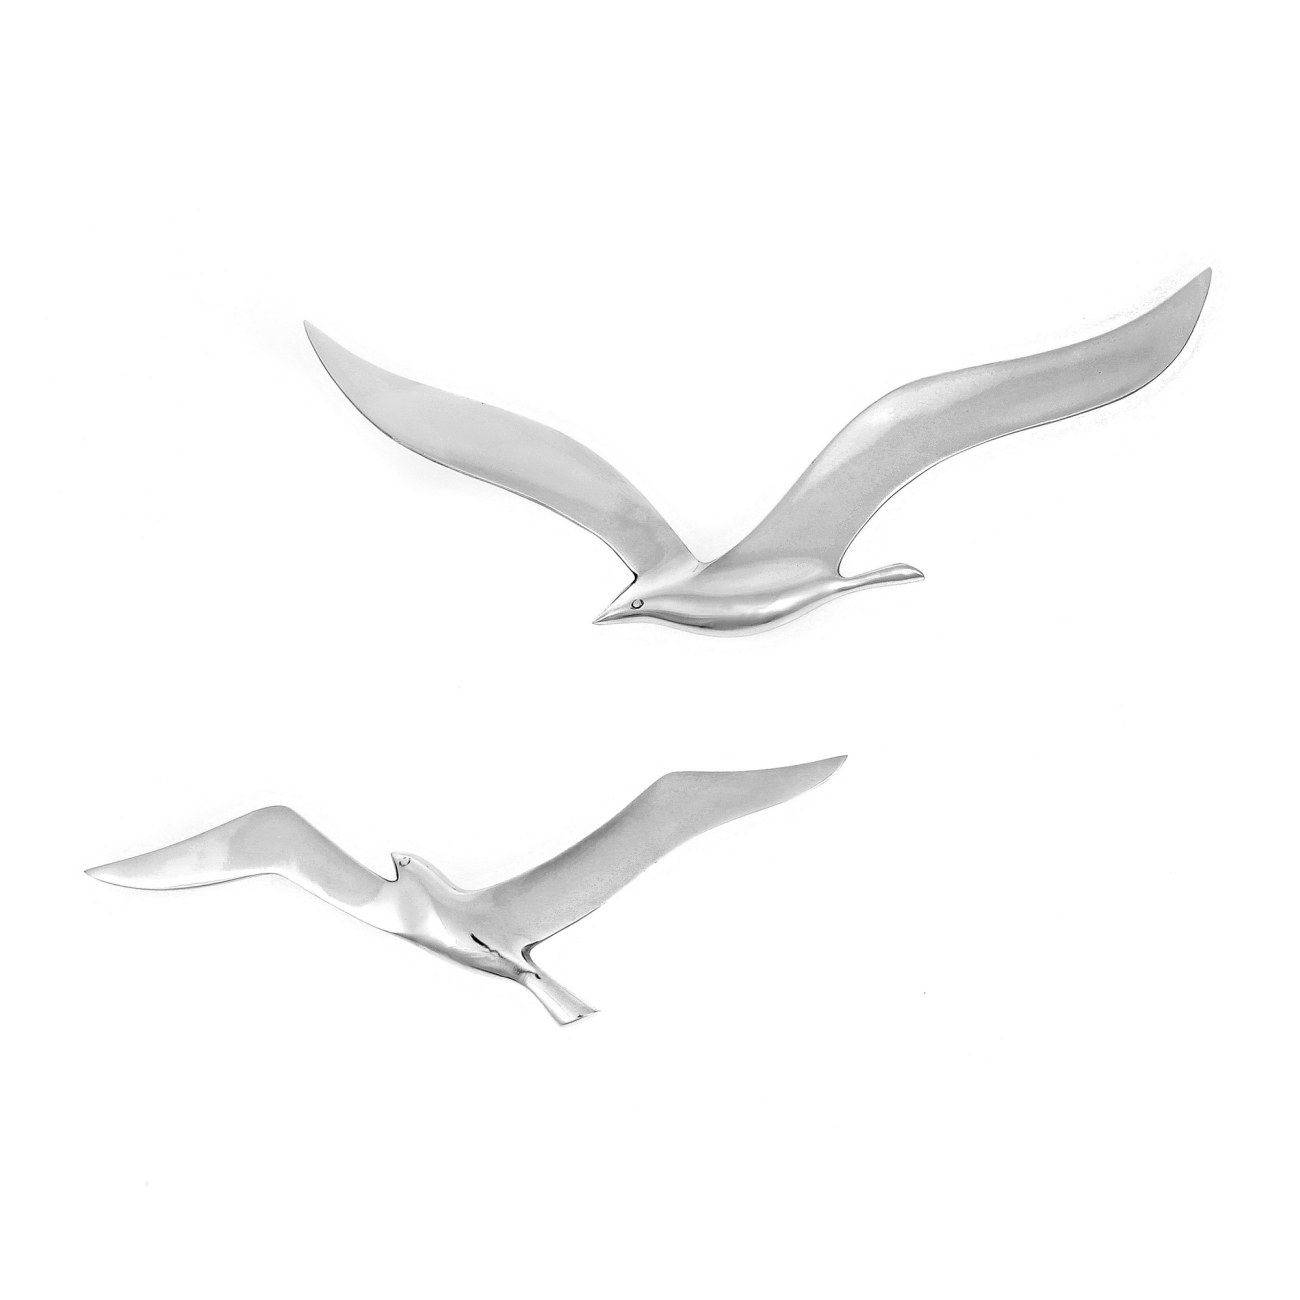 Seagull Bird – Handmade Metal Wall Art Decor – Silver, Small 27cm With Best And Newest Seagull Metal Wall Art (View 9 of 20)